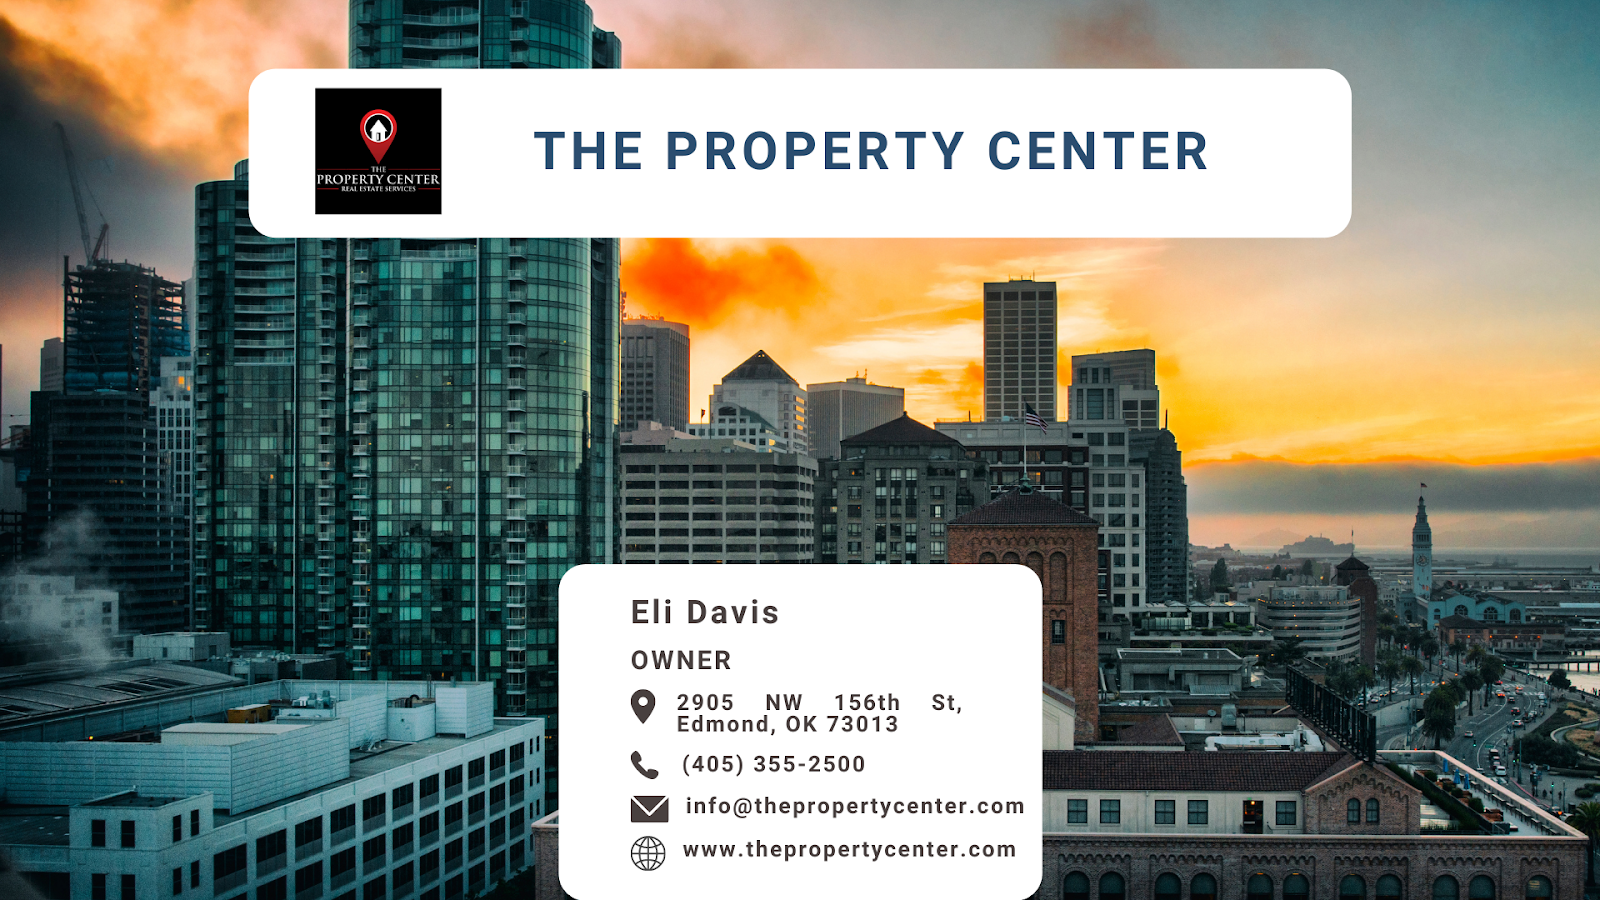 The property center